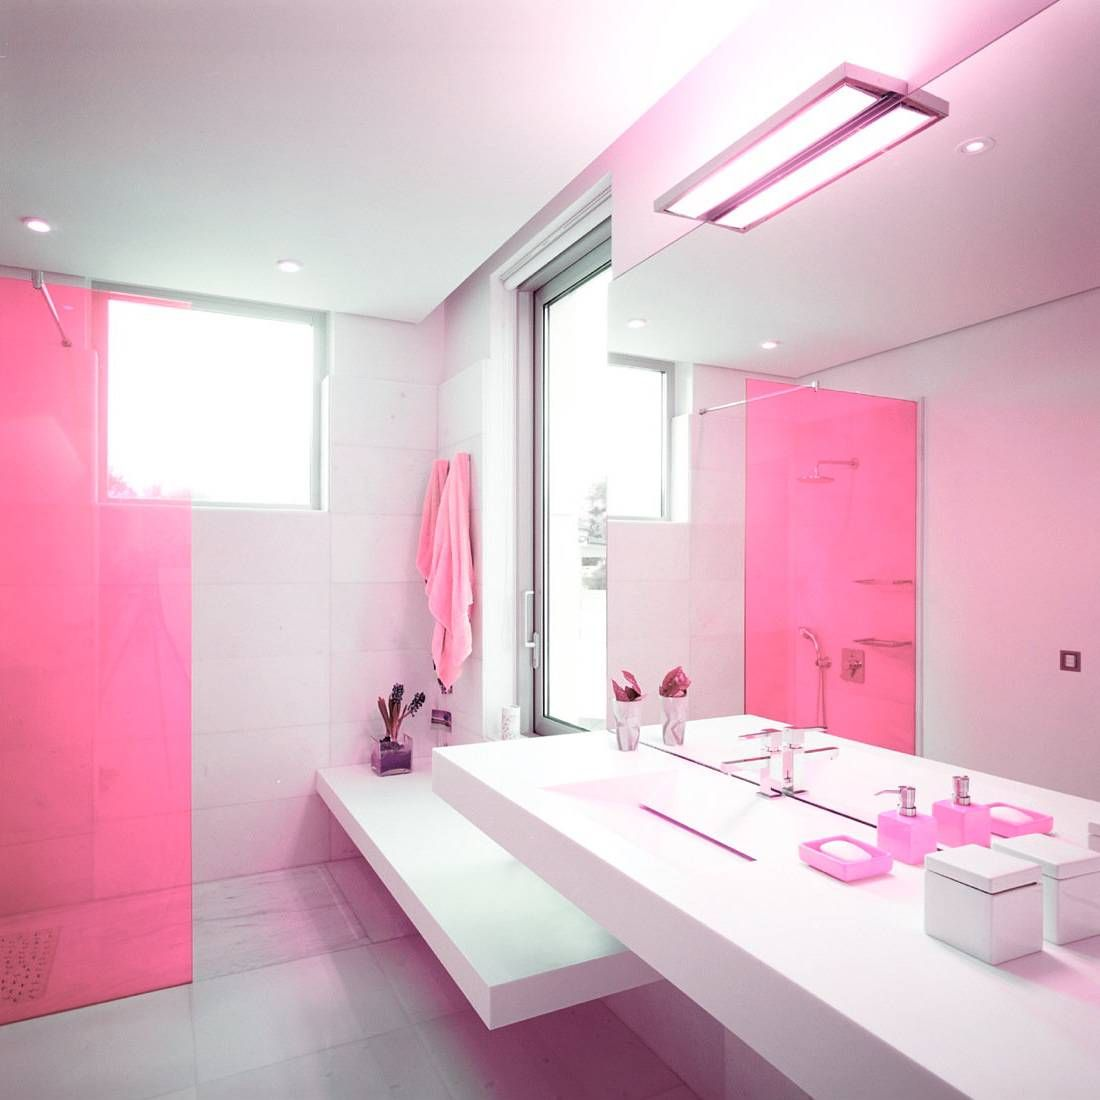 10  images about Bathroom on Pinterest   Beauty box  Pink bathrooms and Towels. 10  images about Bathroom on Pinterest   Beauty box  Pink